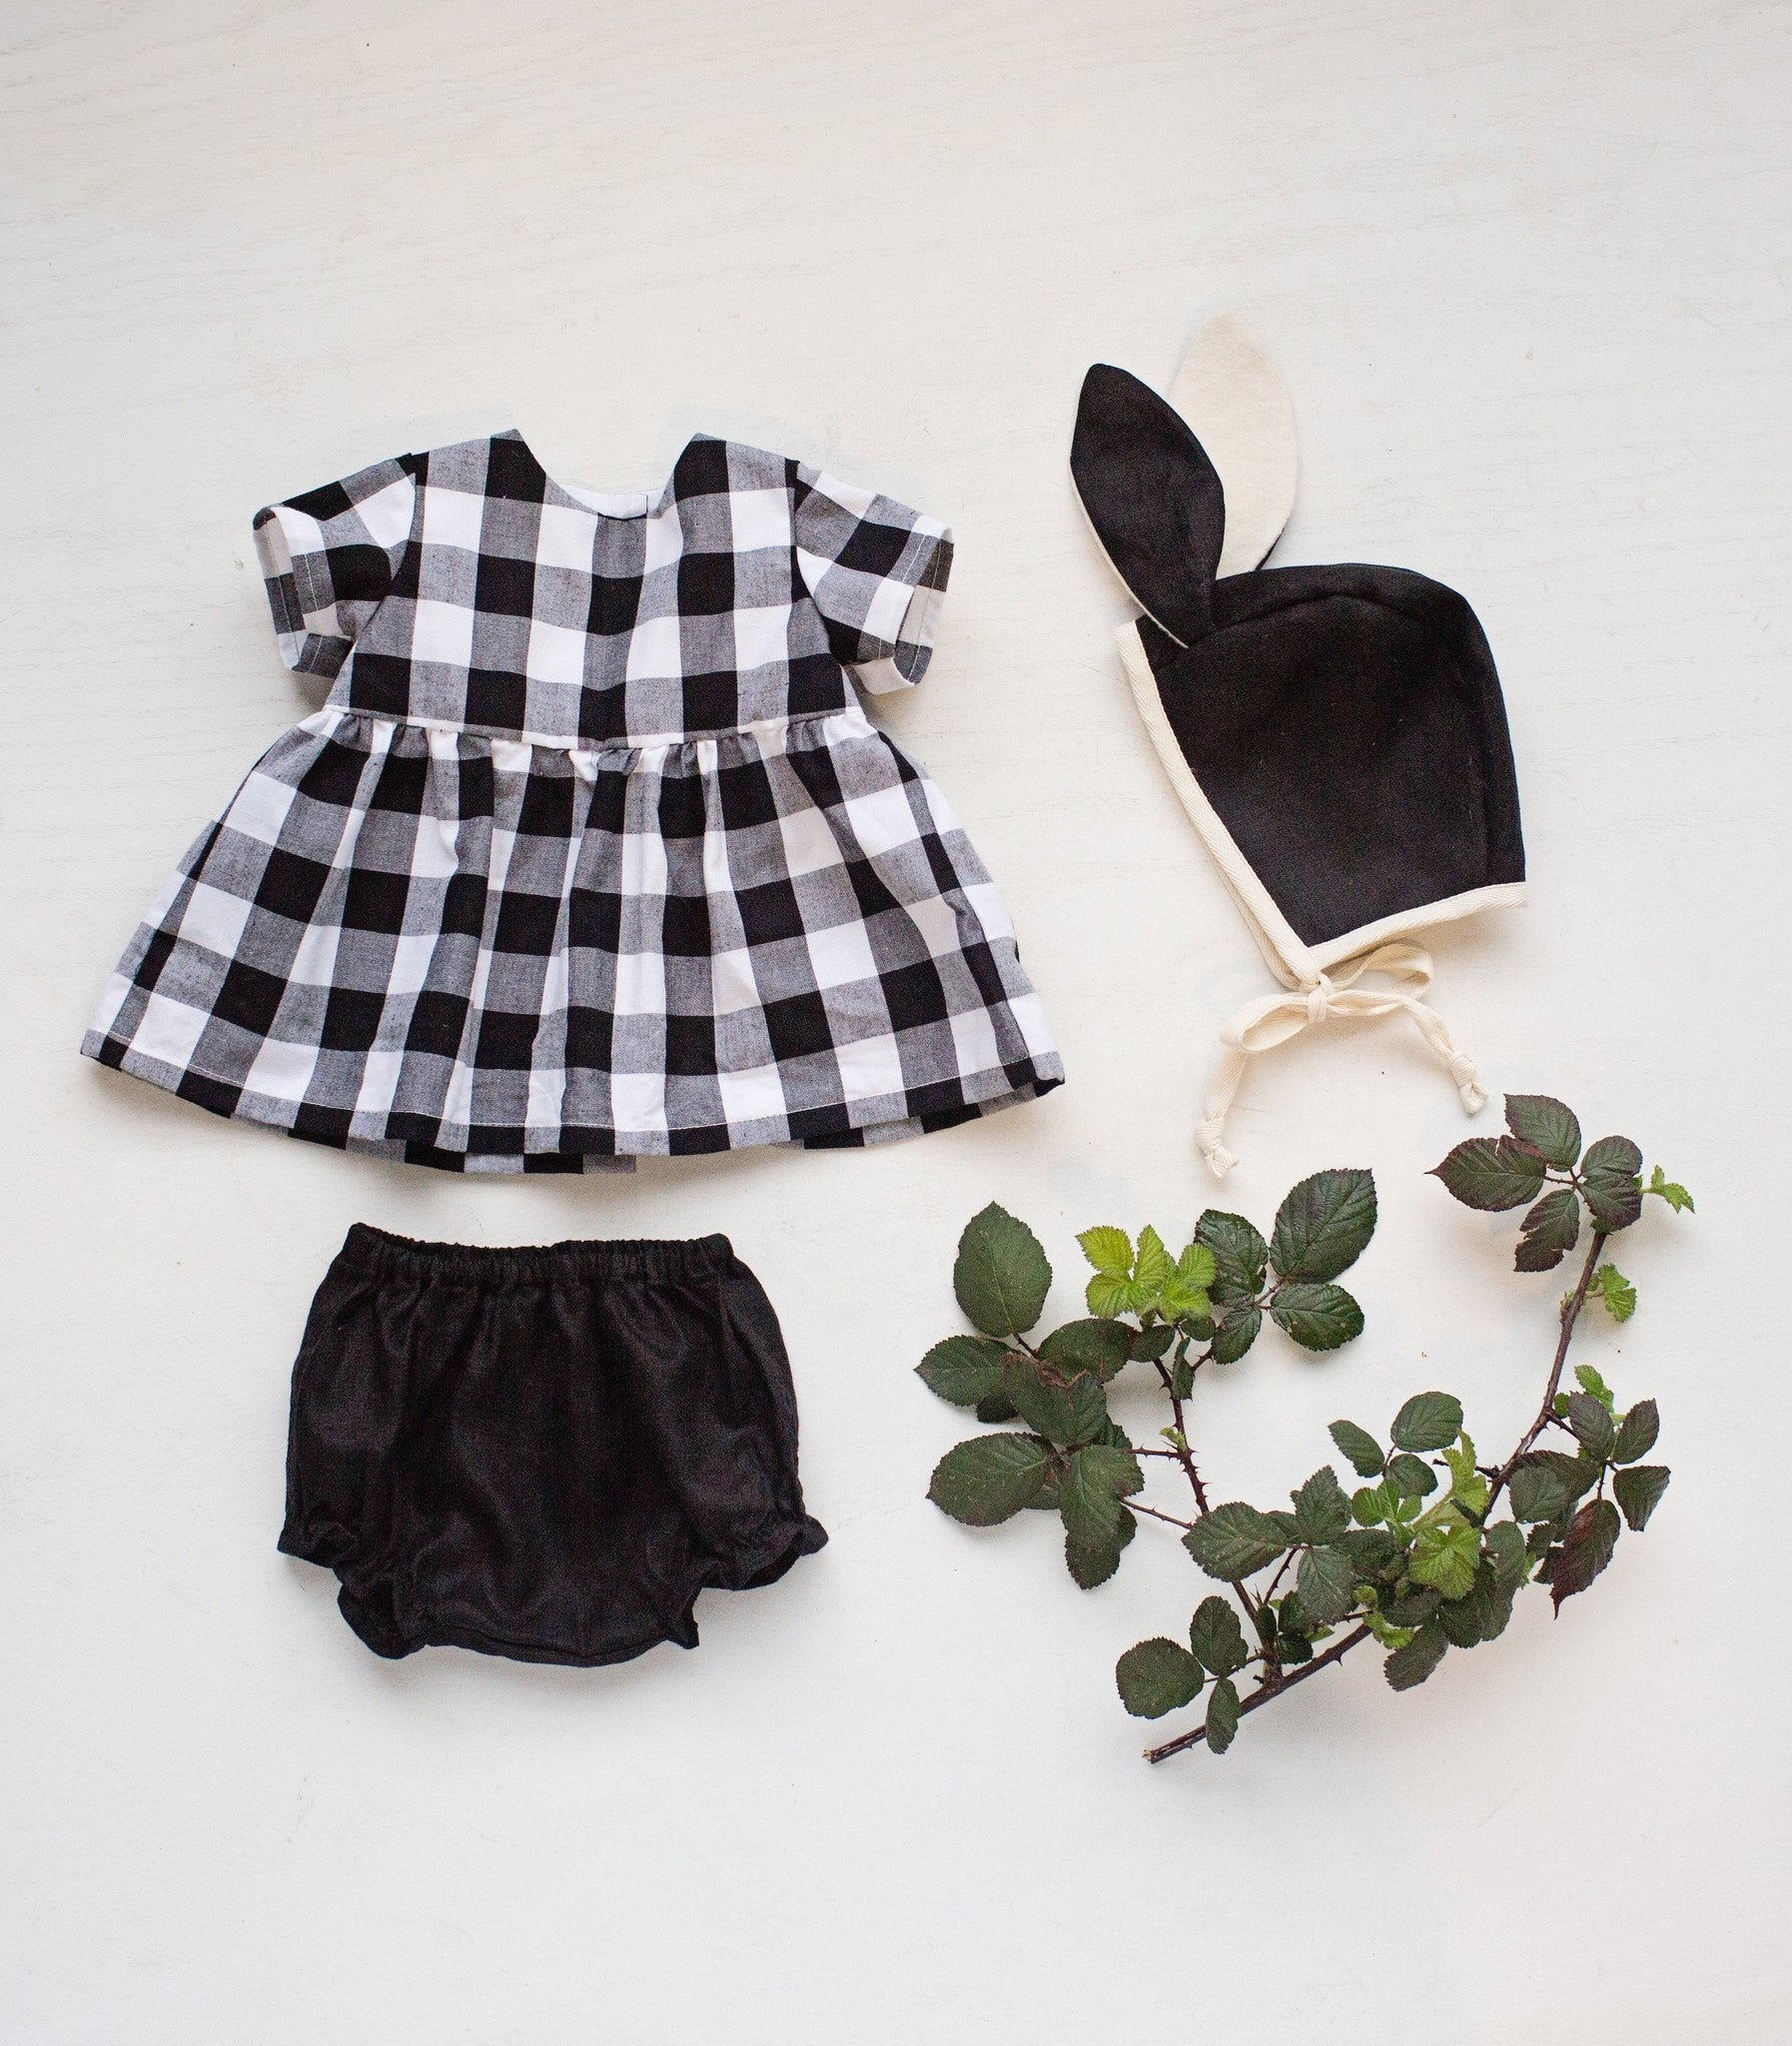 fawn&forest Tortoise & the Hare Black & White Gingham Blouse - fawn&forest